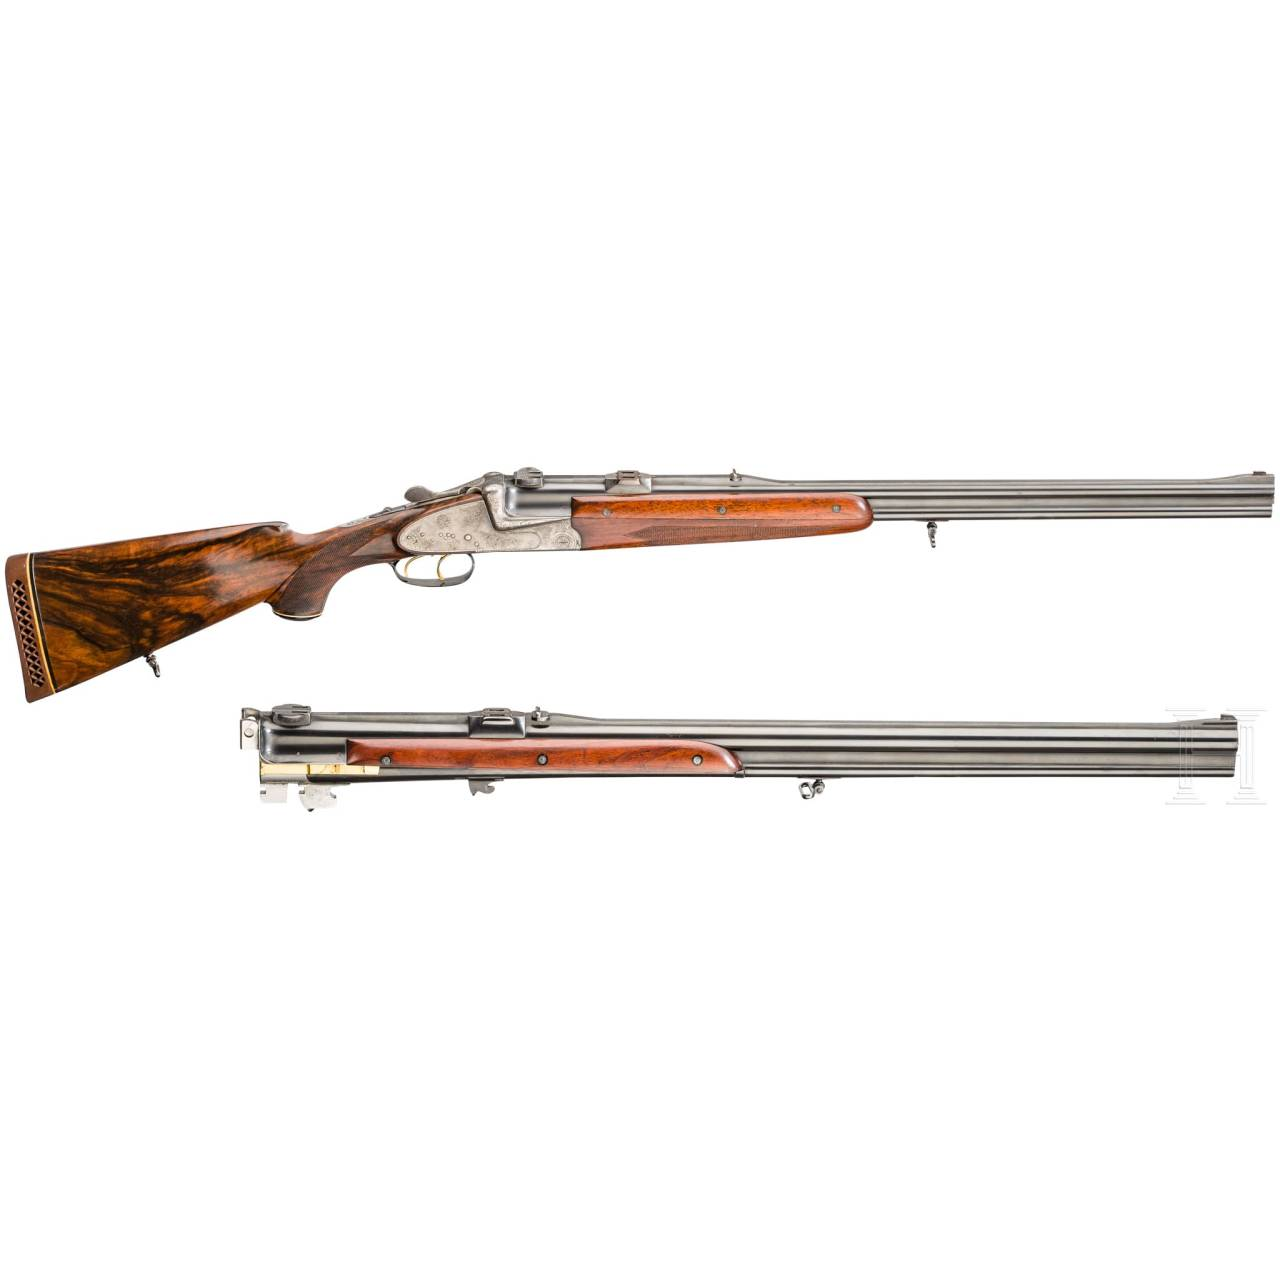 A cased O/U double rifle by Winkler, Ferlach, with Kahles scope and interchangeable O/U combination rifle with Hensoldt scope